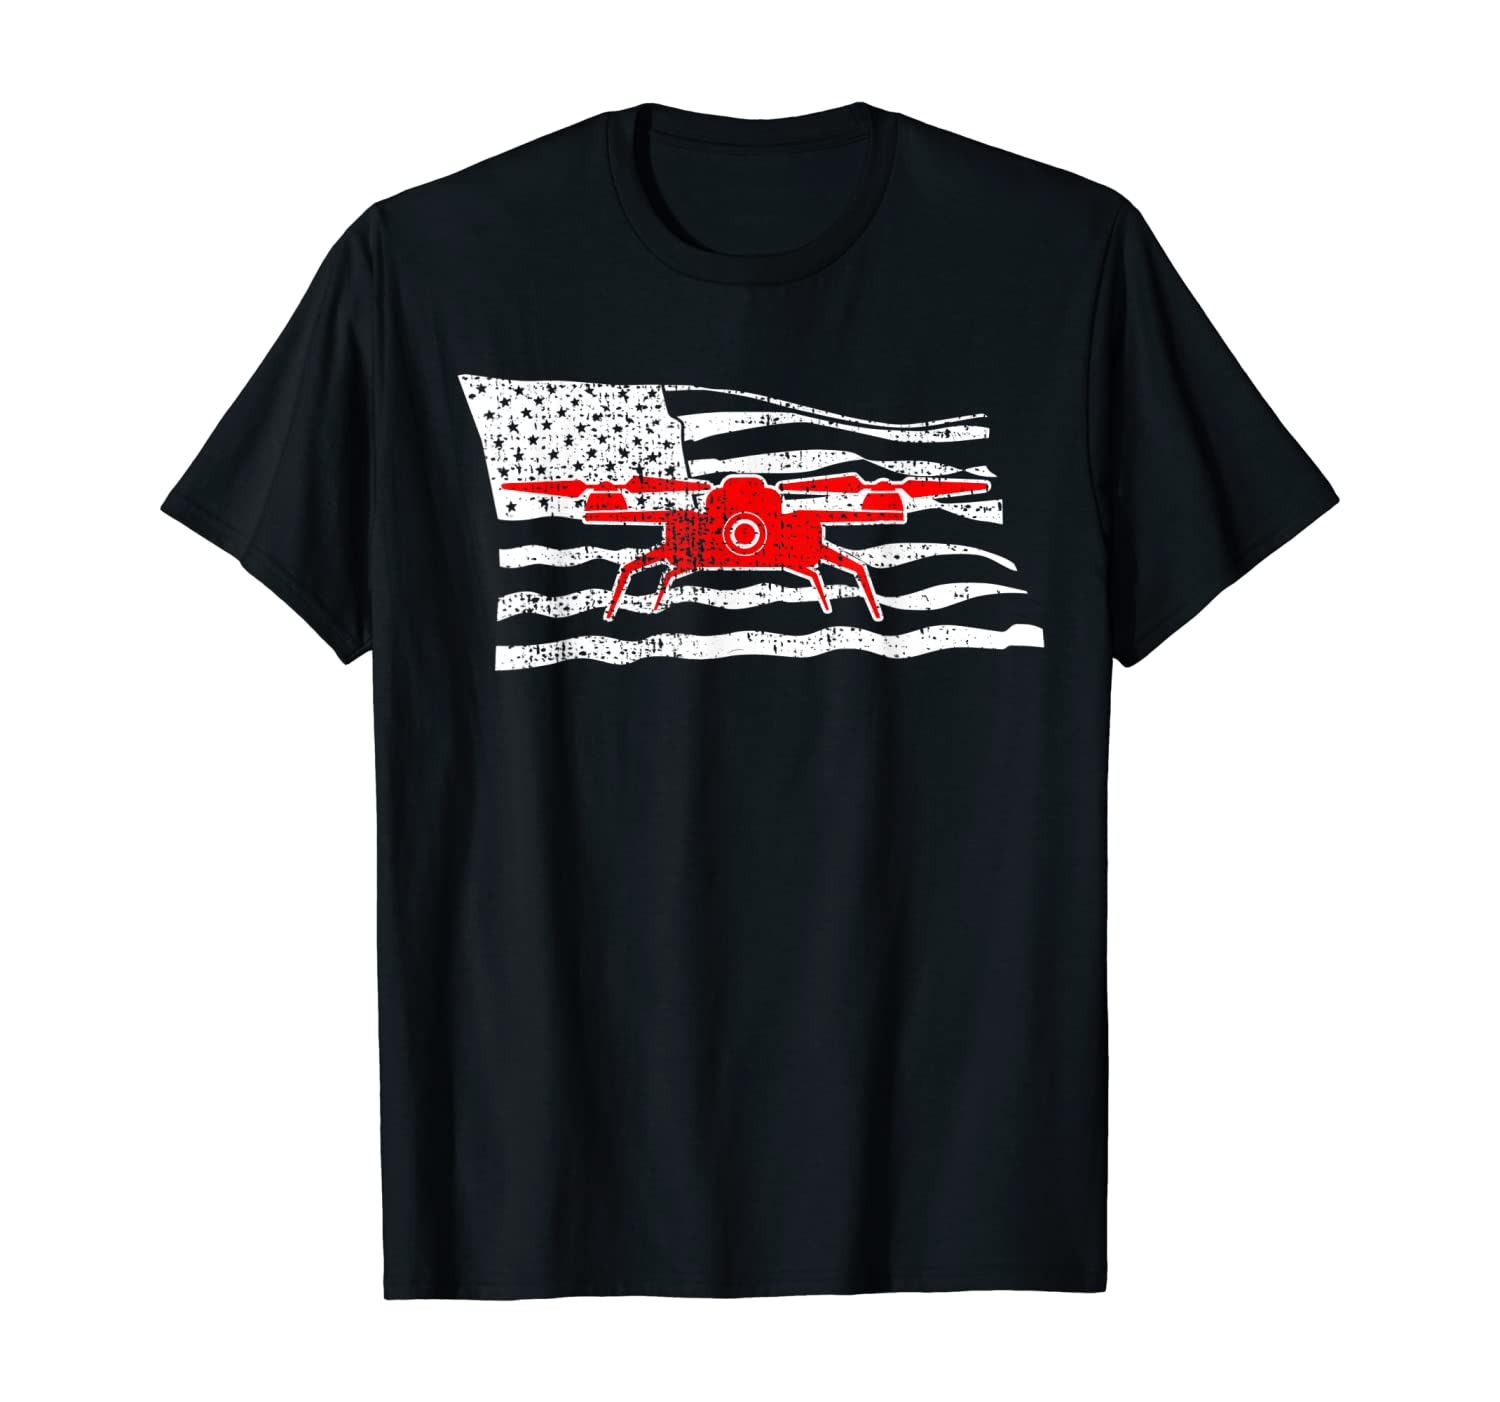 Drone T-Shirt USA Flag Tshirt 4th Of July Pilot Gift